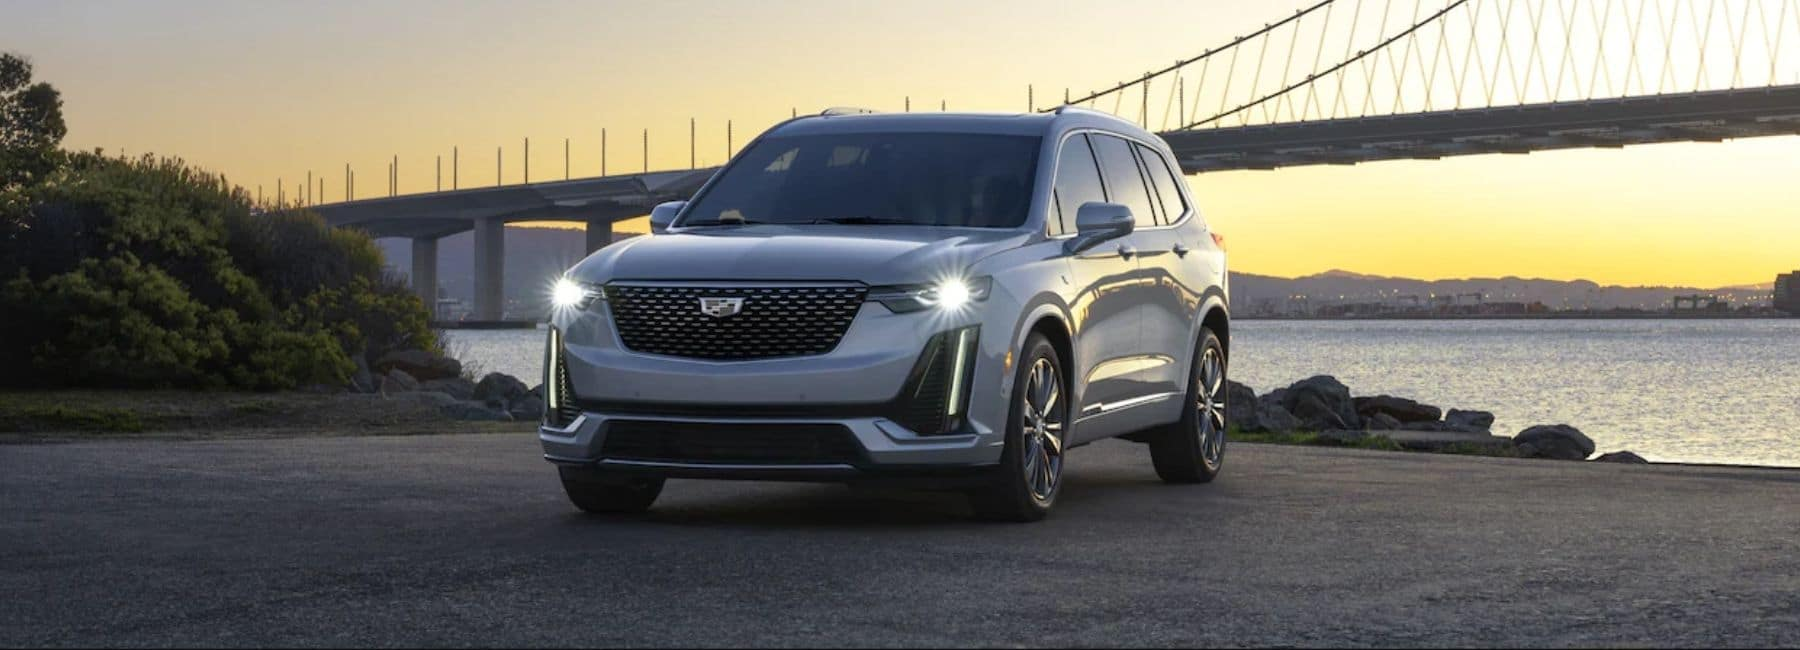 Silver 2021 Cadillac XT6 With Water and Bridge in Background - Cadillac Dealer Near Roswell, NM